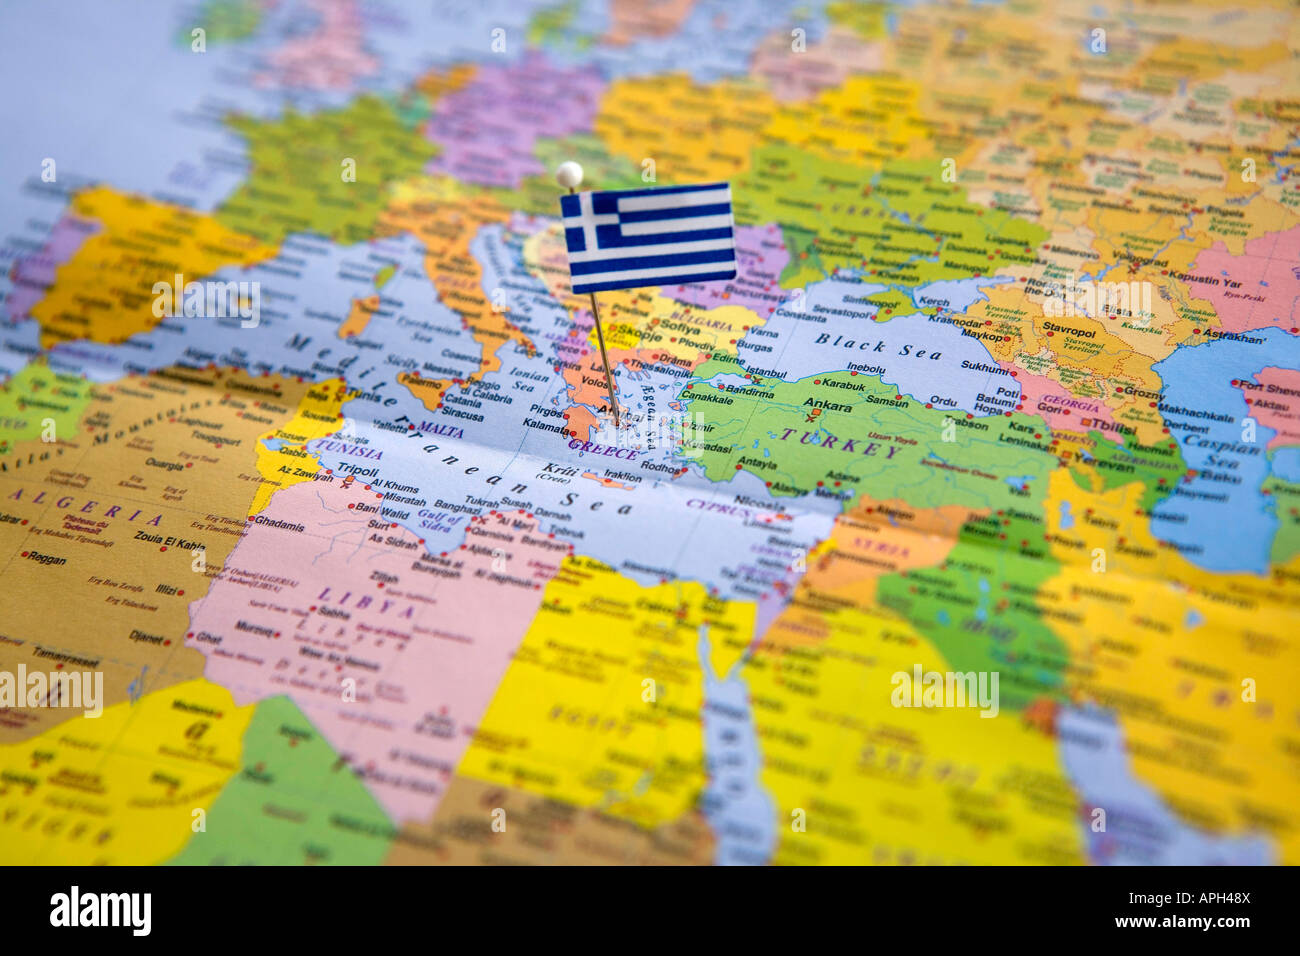 Greece On Map Of World.Flag Pin Placed On World Map In The Capital Of Greece Athens Stock